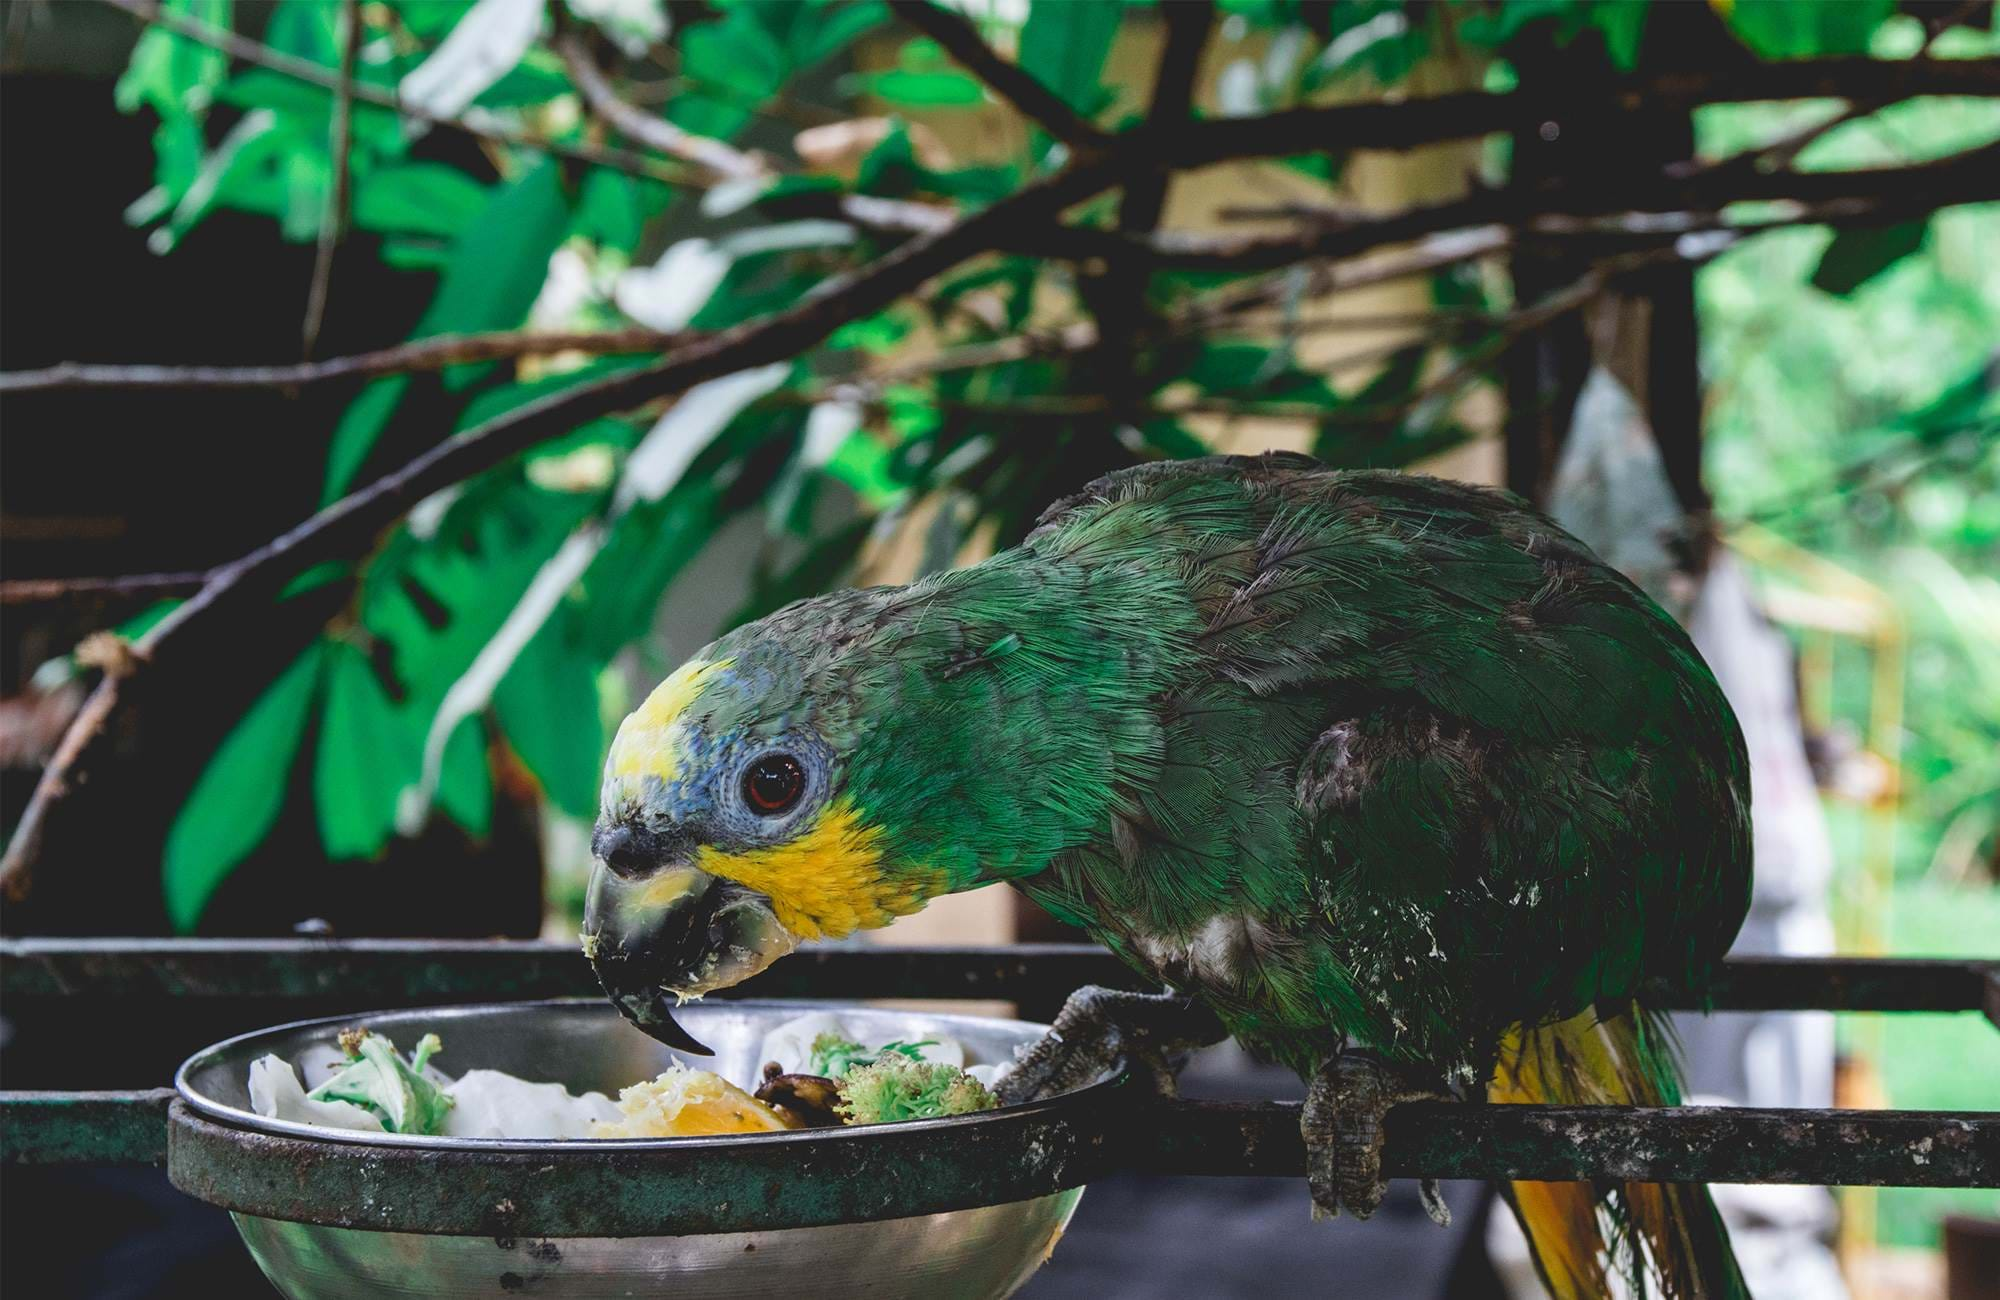 parrot eating from a bowl